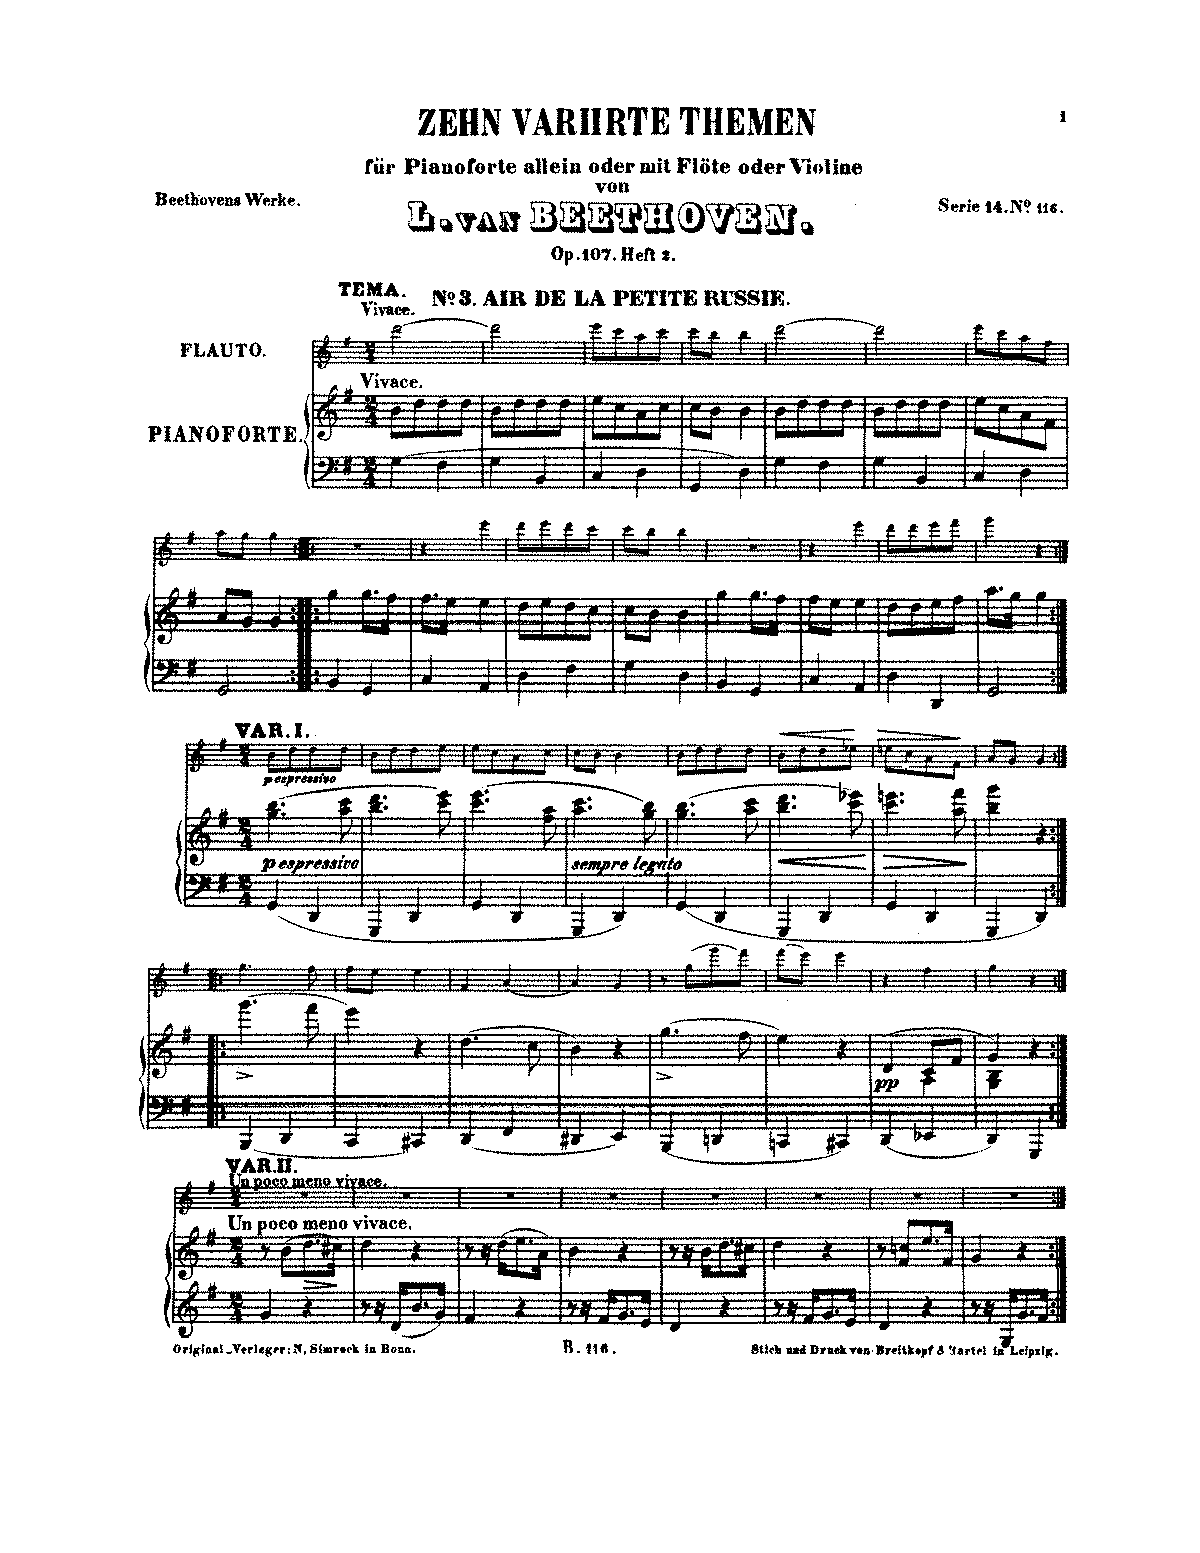 Beethoven 10themesandvariations op107 heft2 piano.pdf